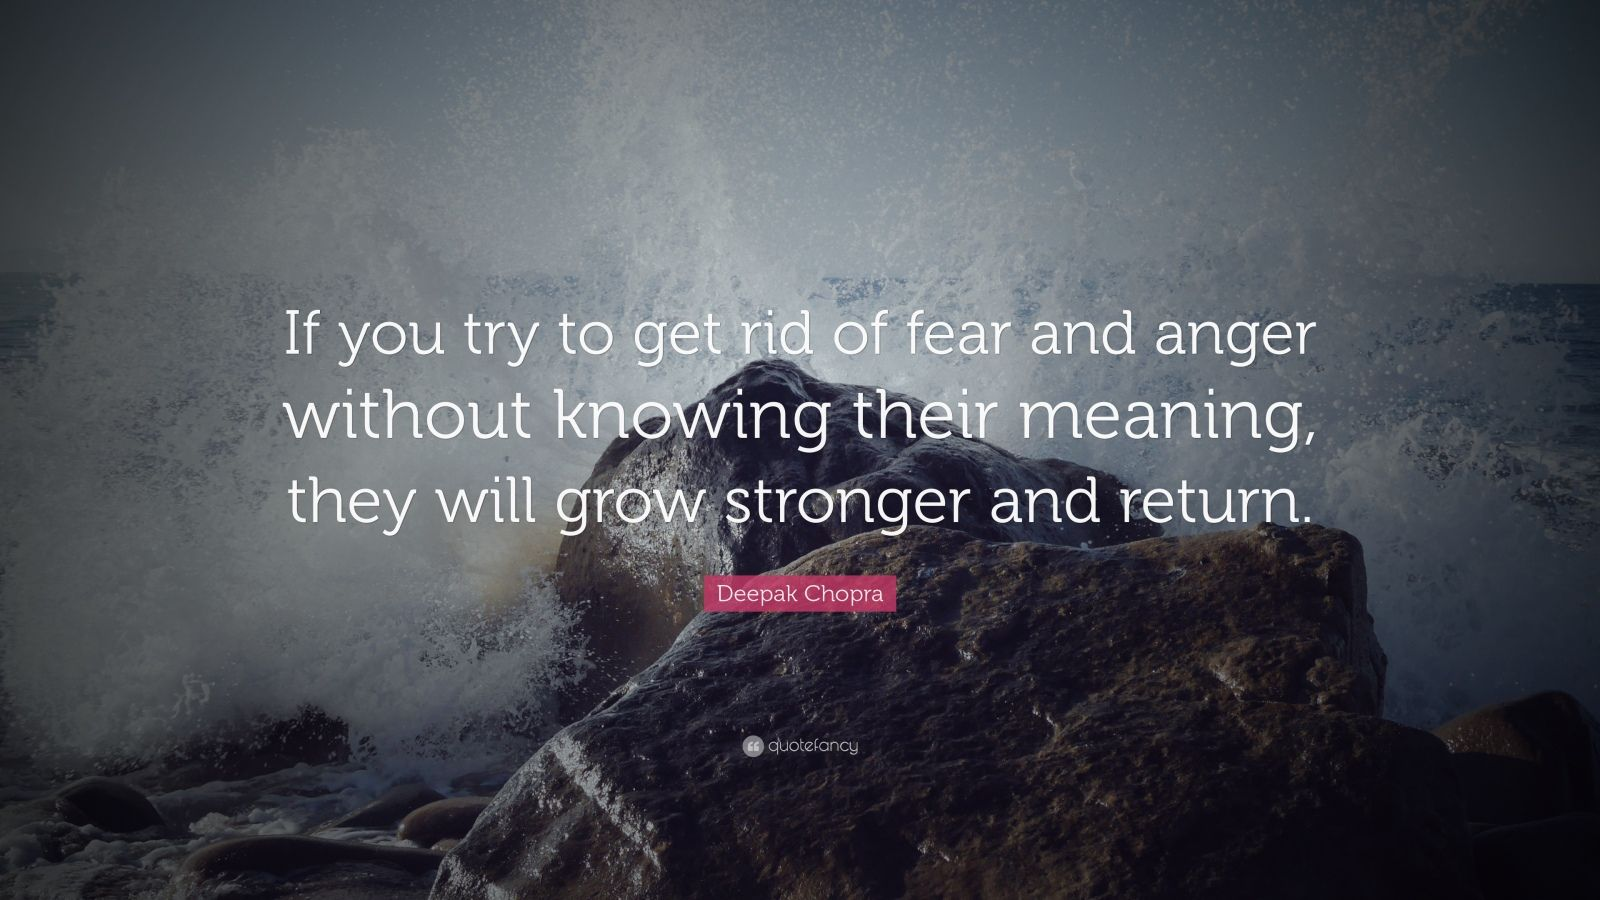 """Deepak Chopra Quote: """"If you try to get rid of fear and anger without knowing their meaning, they will grow stronger and return."""""""